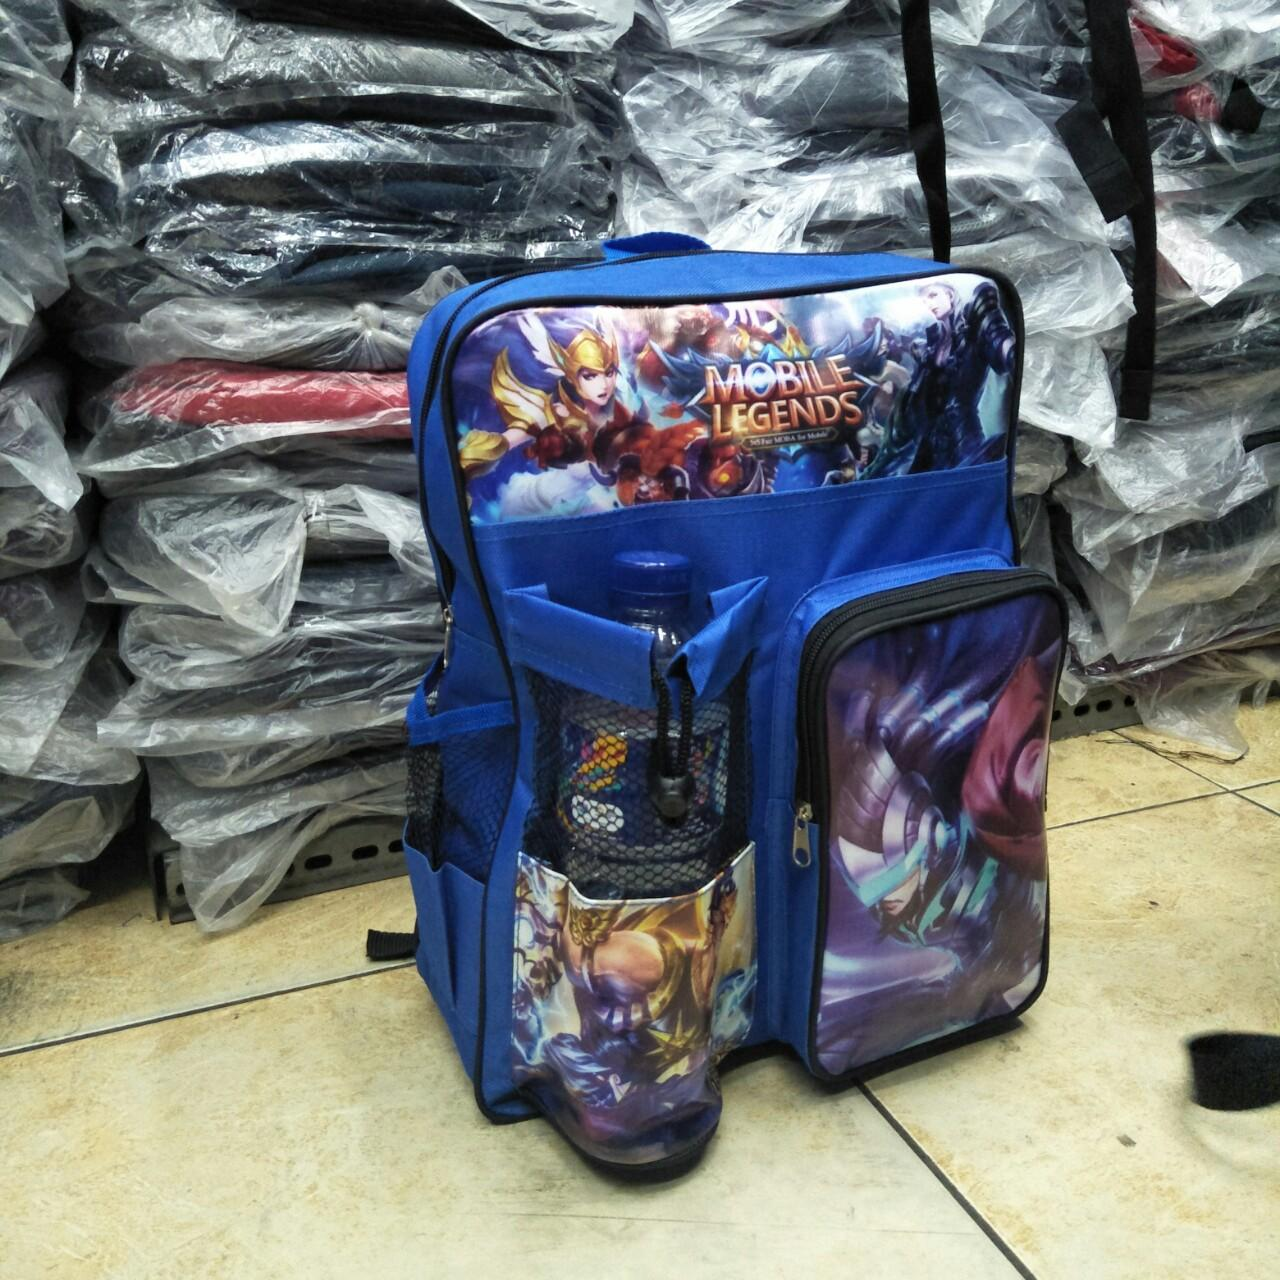 tas mobile legend anak sd mobile legend caracter size 14 inchi - blue